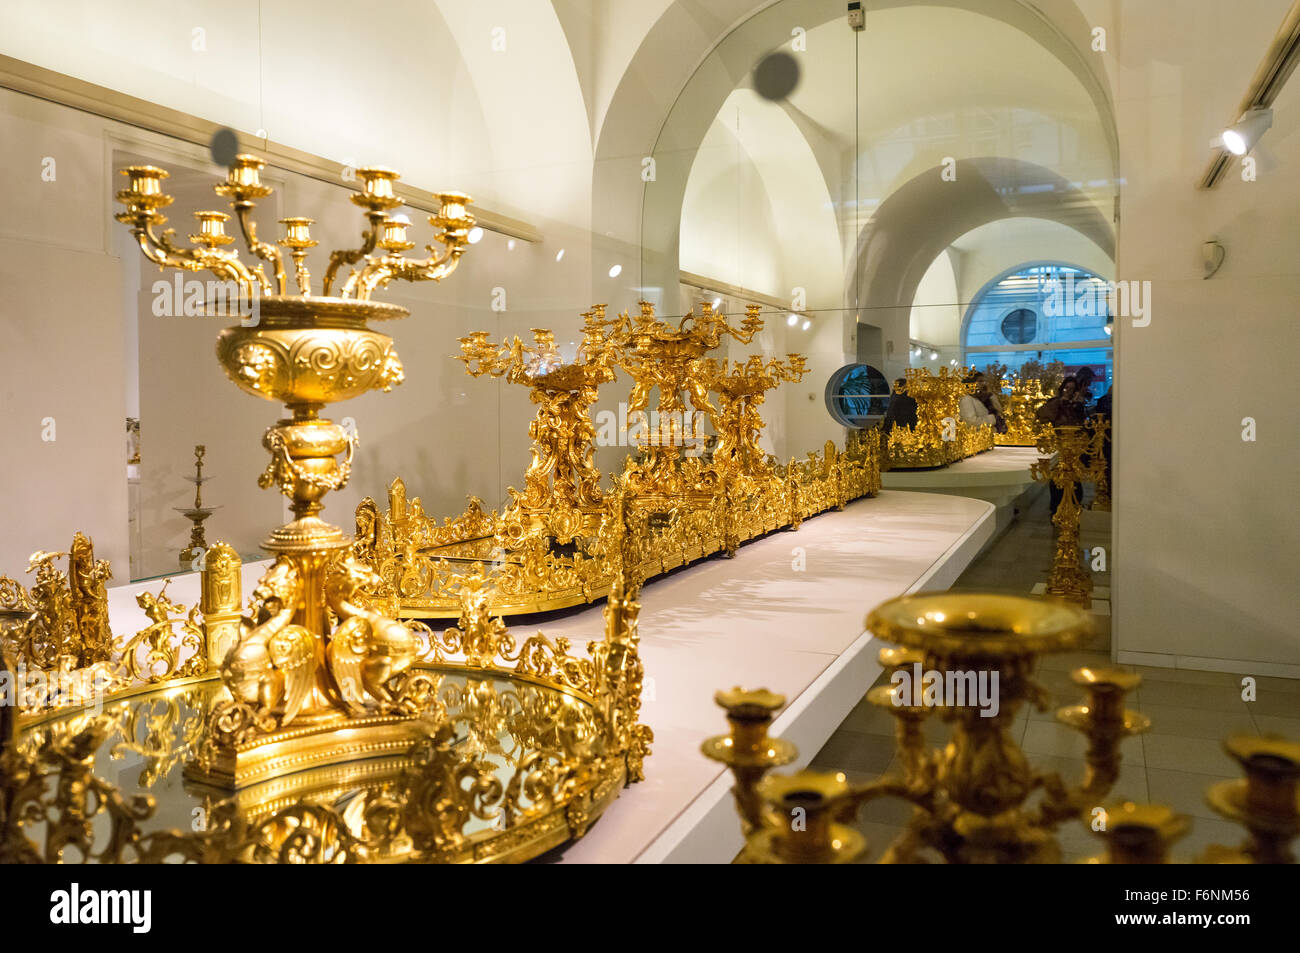 Imperial furniture - Austria Vienna The Hofburg The Imperial Furniture Collection Stock Image